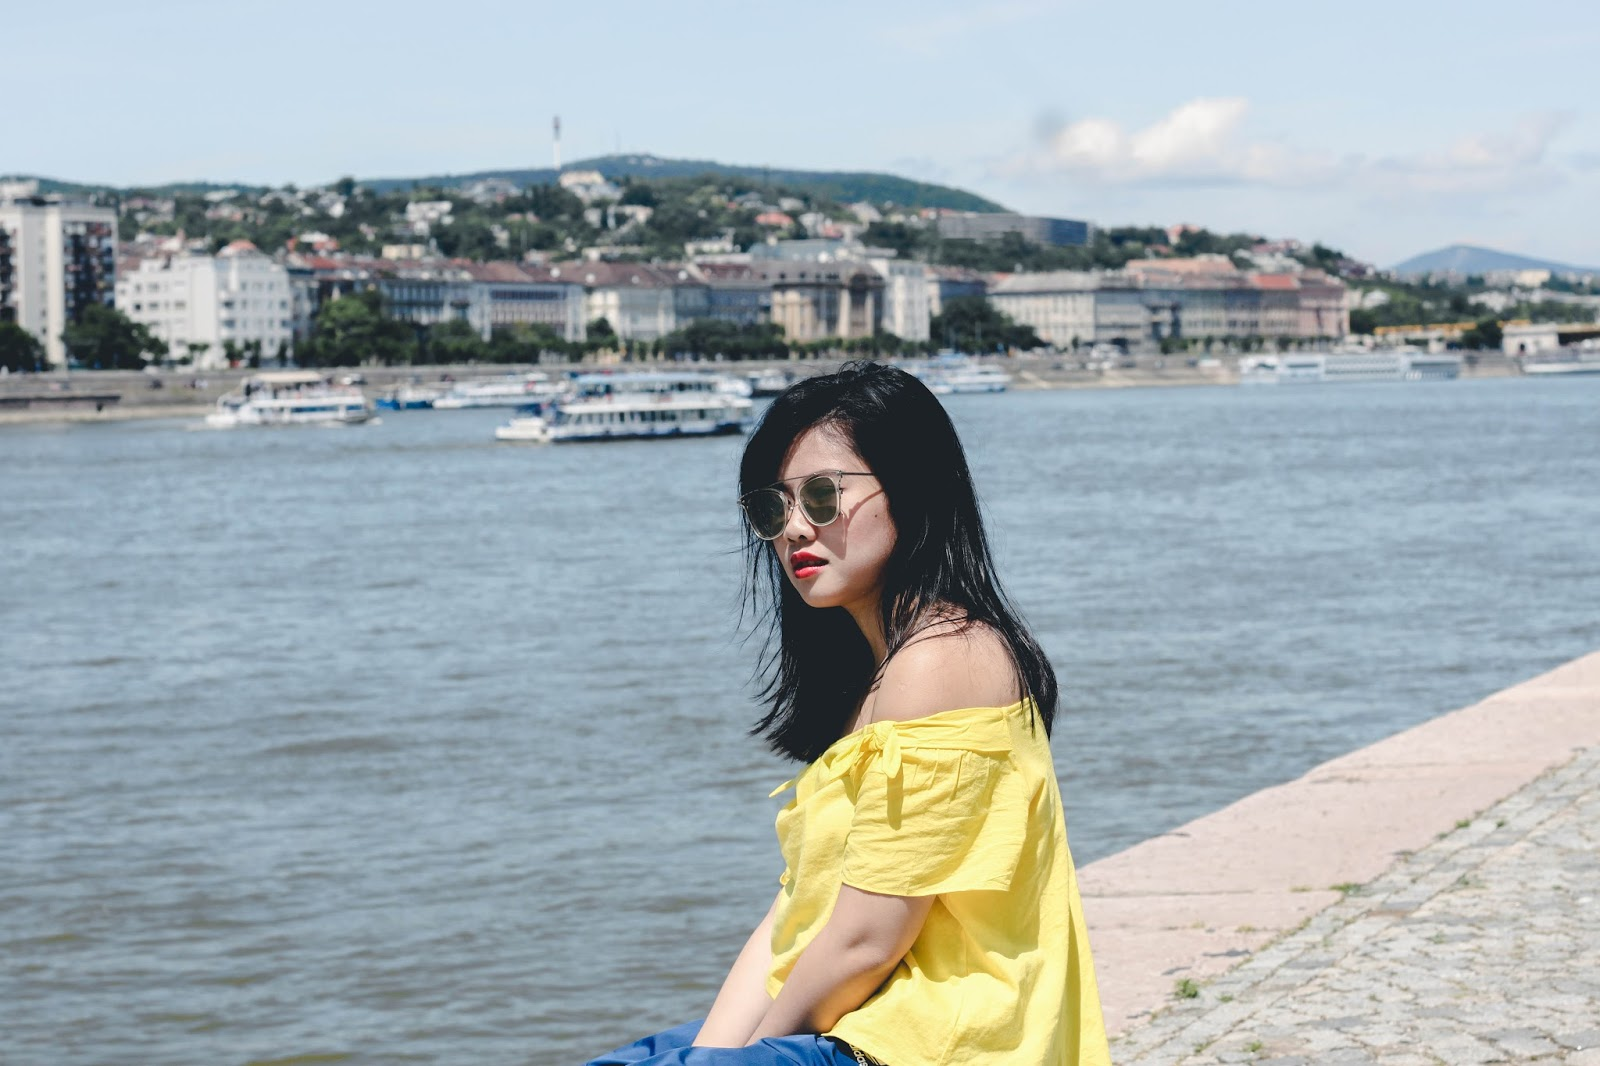 budapest, europe, travel, summer holiday, look book, street style, photography, stylist, ootd, fashion, sunny, stylexstyle